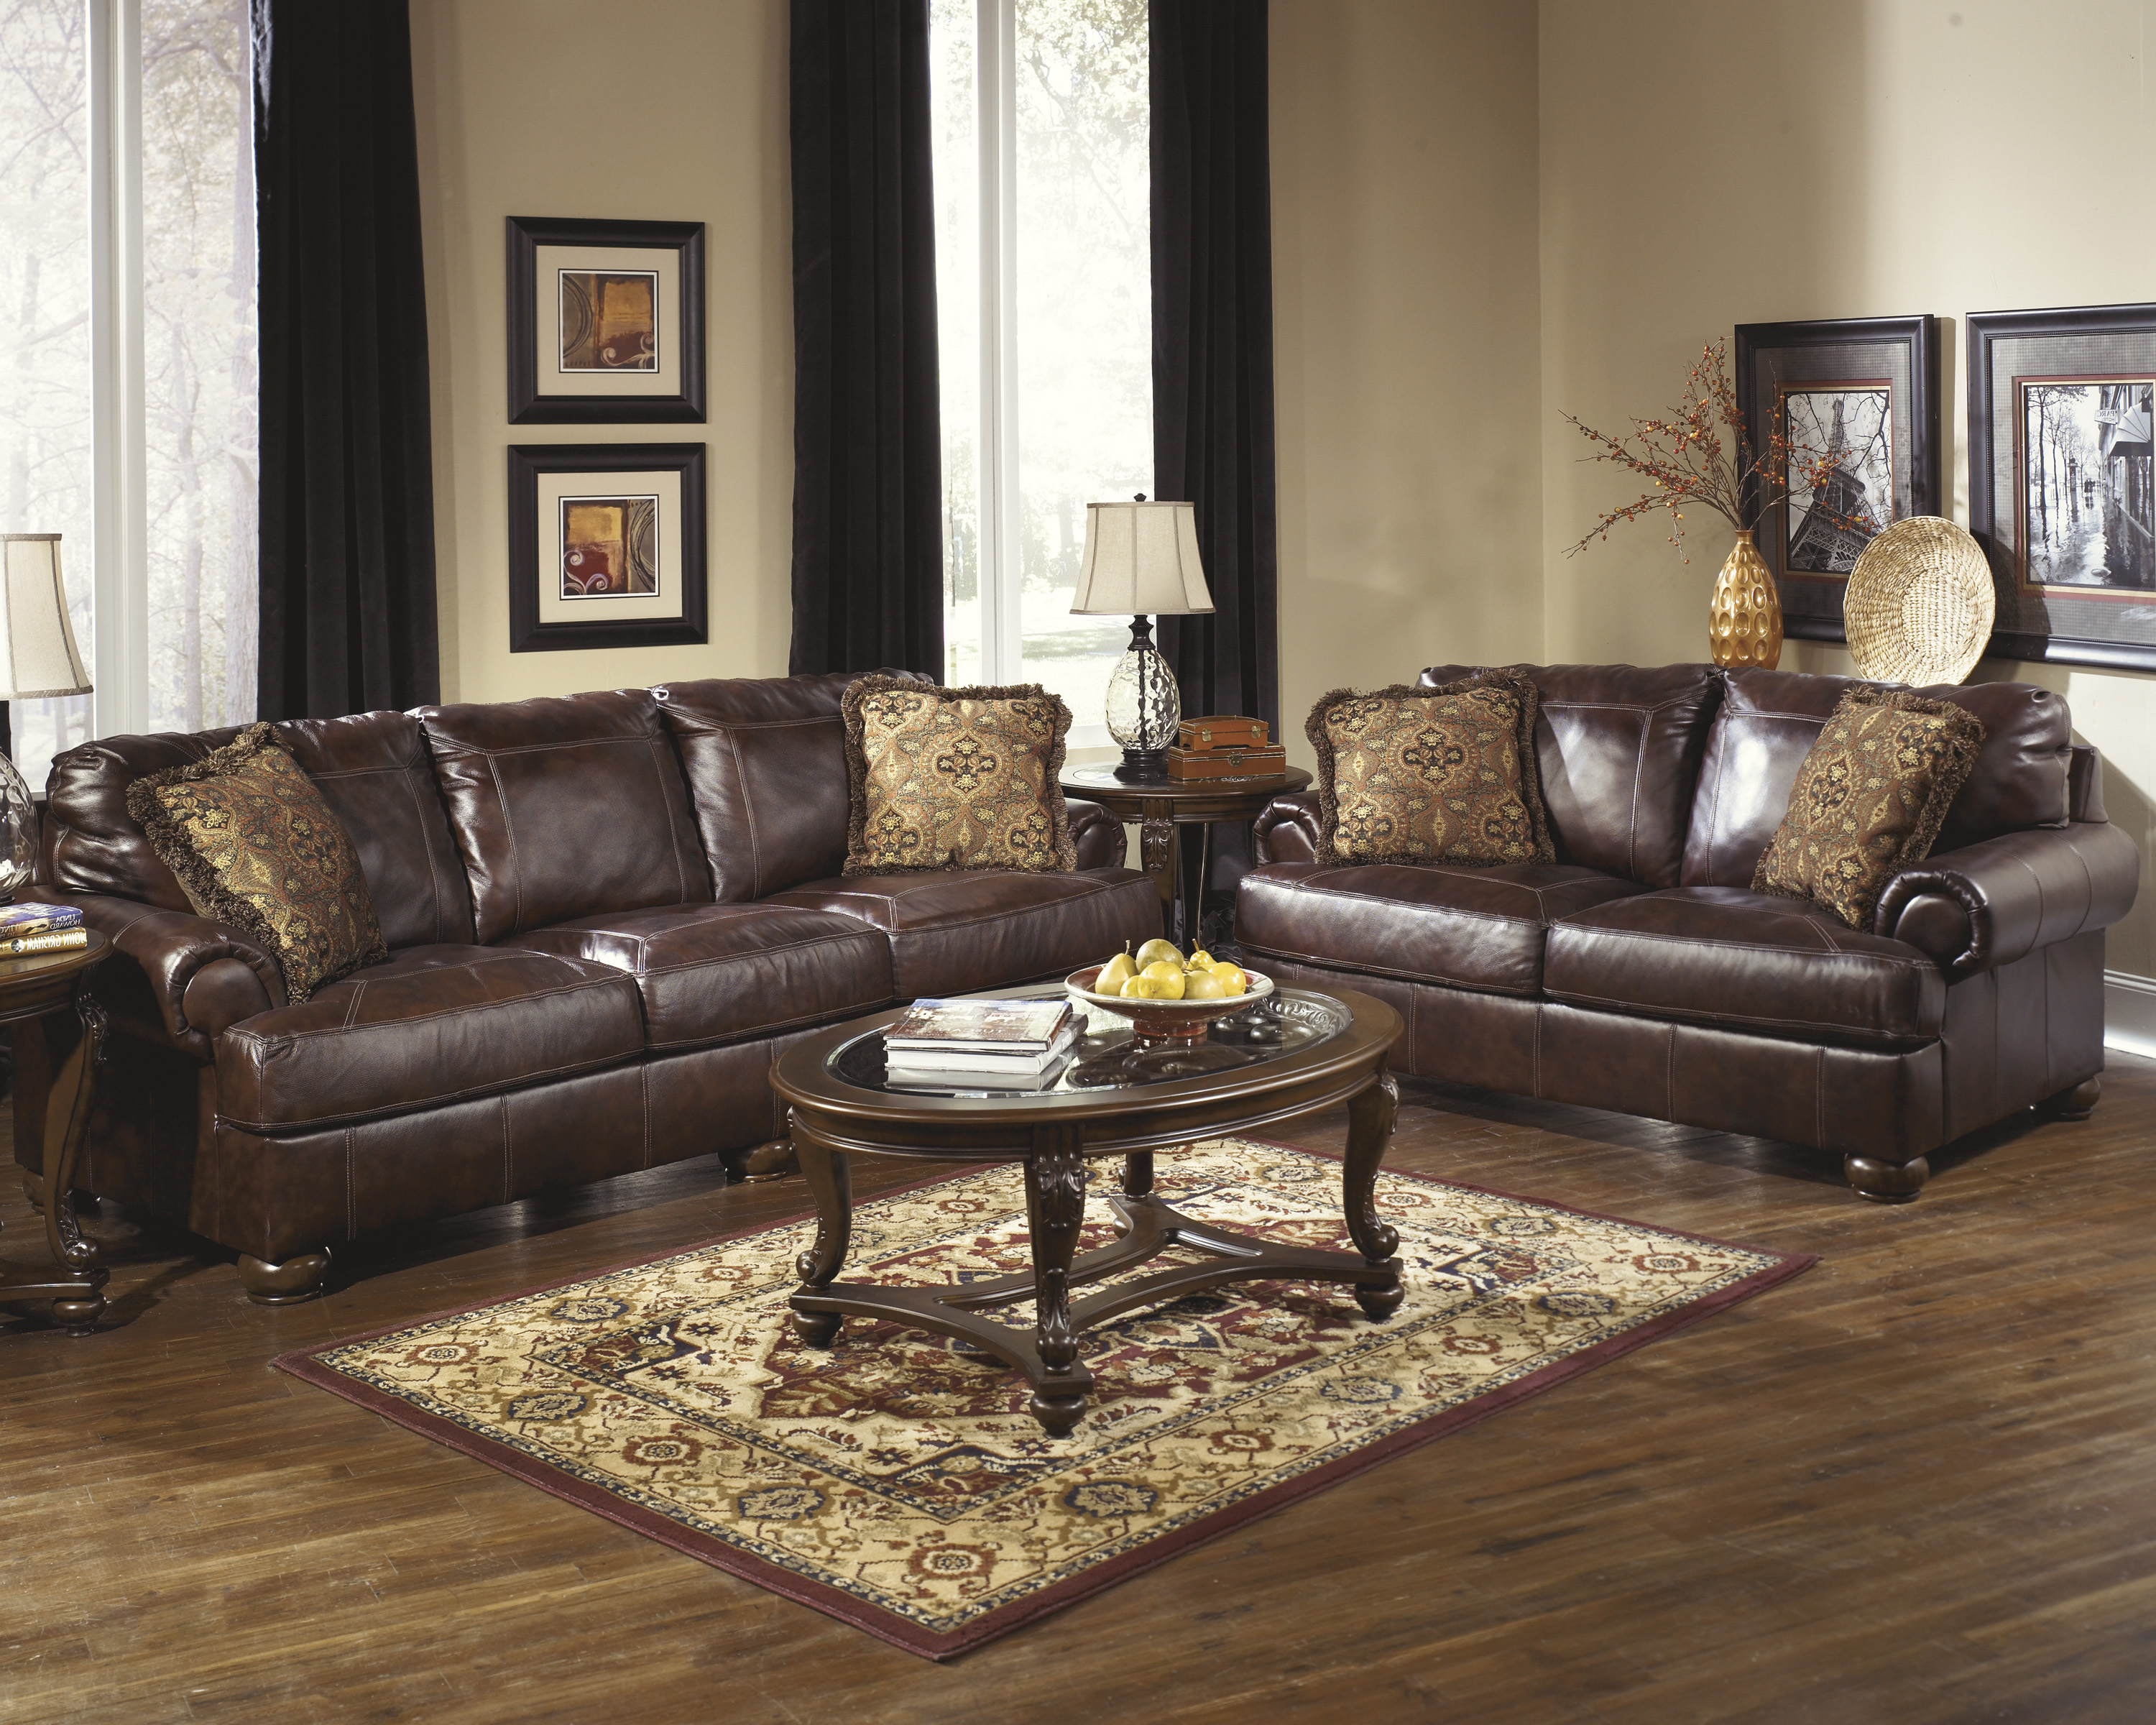 Recent Cheap Ashley Furniture Leather Sofa Sets In Glendale, Ca Regarding Living Room Sofas And Chairs (View 14 of 20)